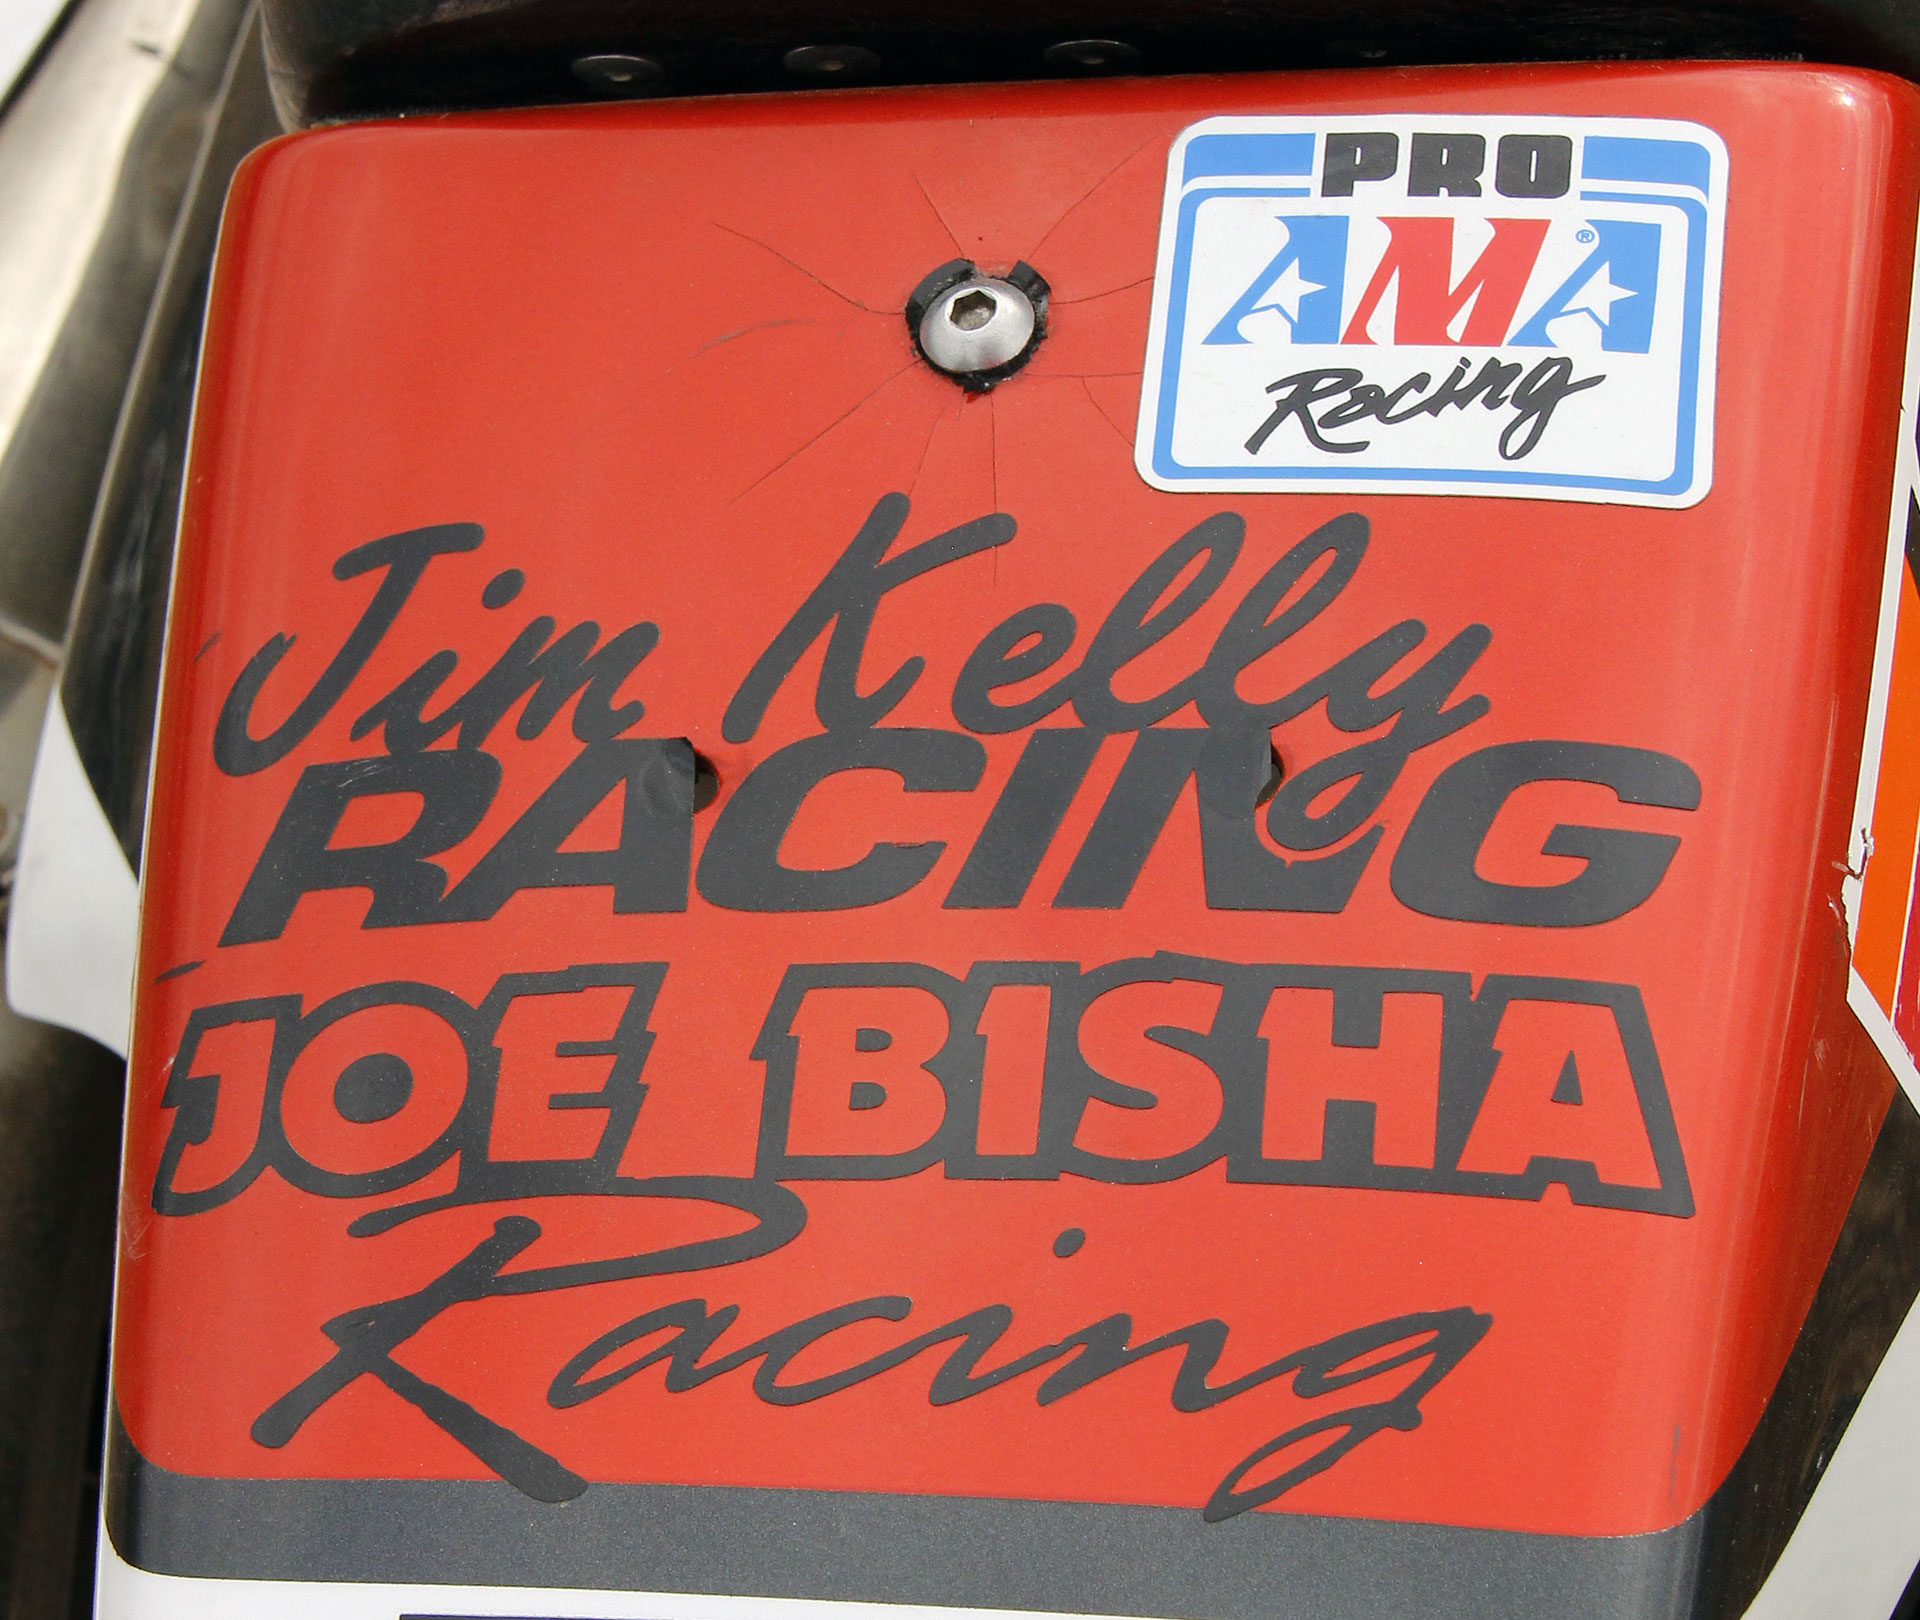 Pro AMA Racing and Jim Kelly Racing/Joe Bisha Racing stickers